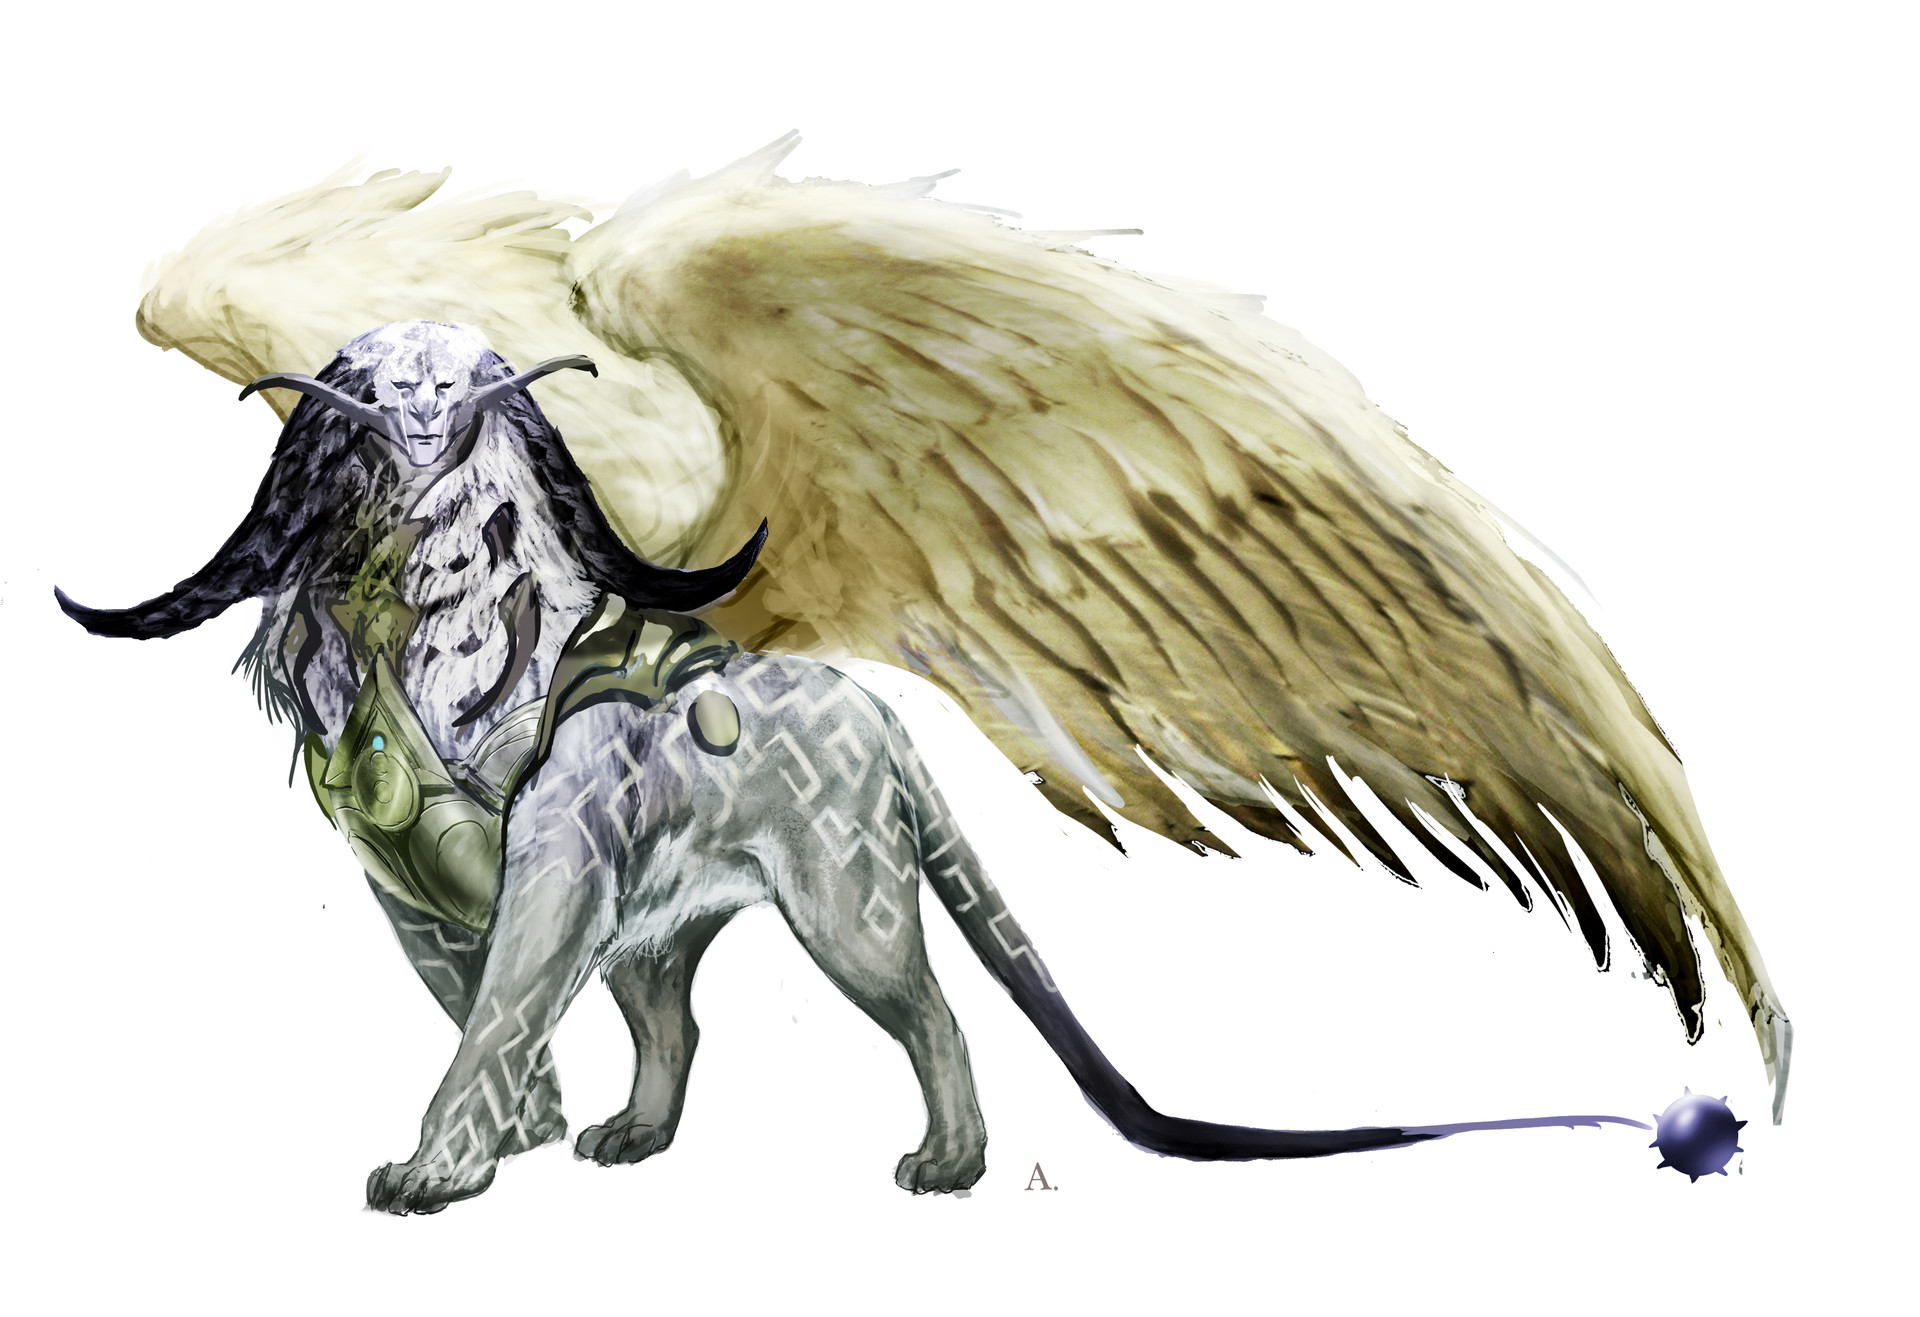 Aleksi briclot magic hook concept azorius creature sphinx